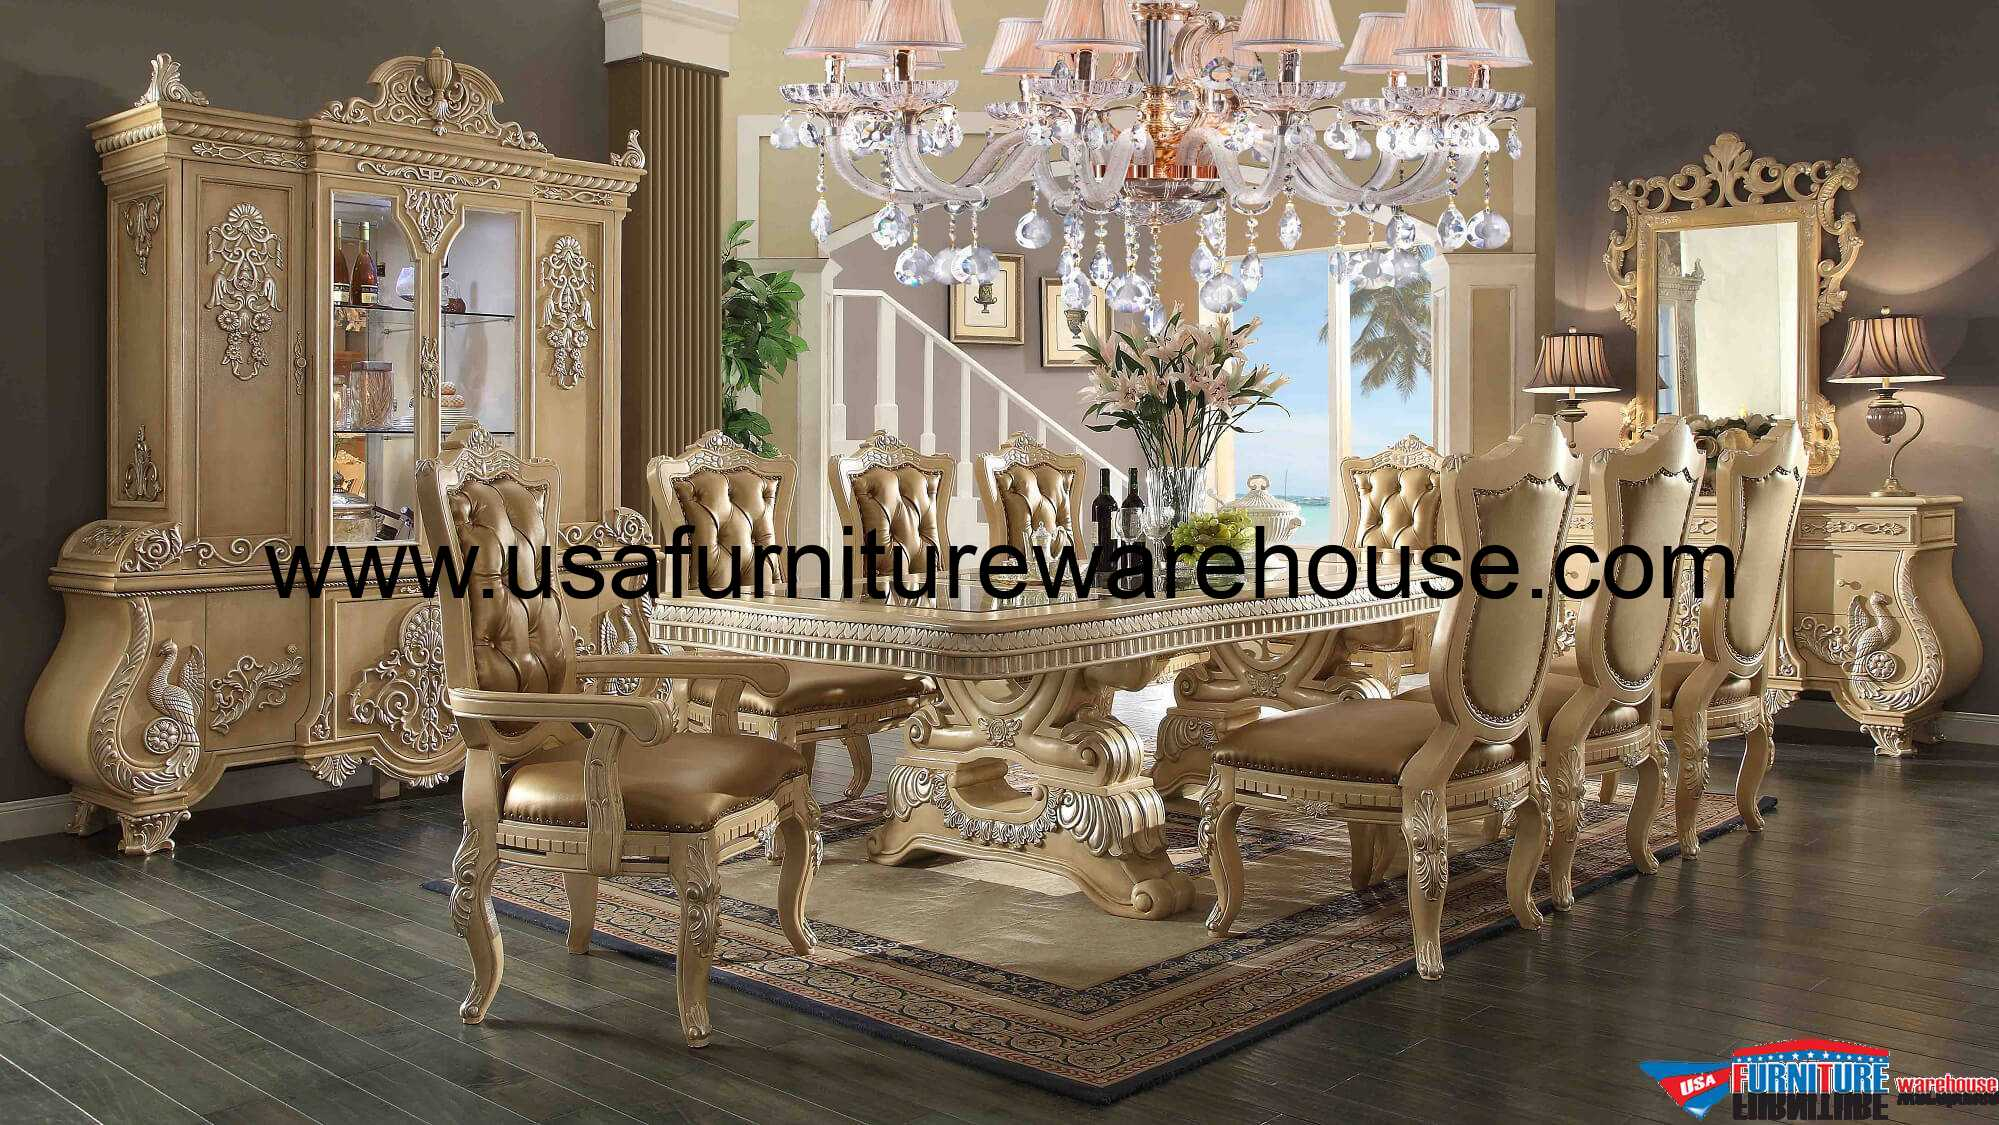 11 piece homey design victorian palace hd 7266 dining set for Hd designs home decor